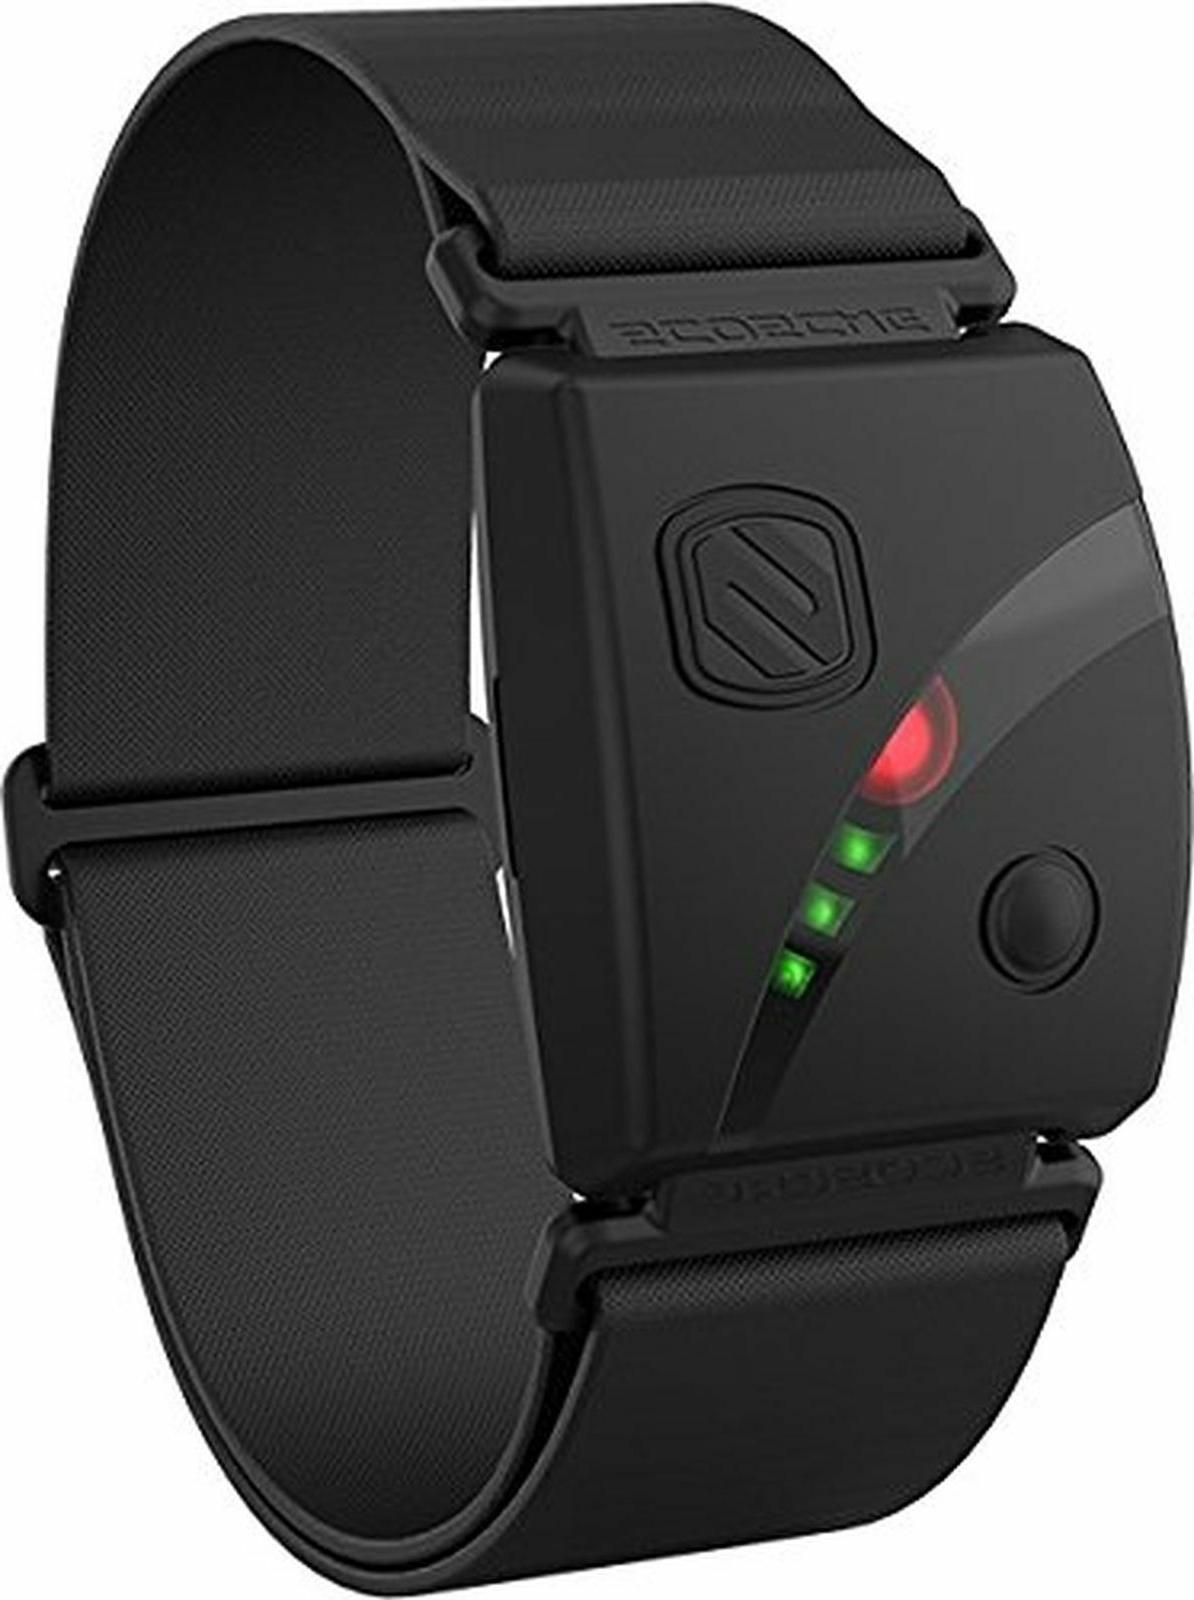 rhythm24 waterproof armband heart rate monitor black